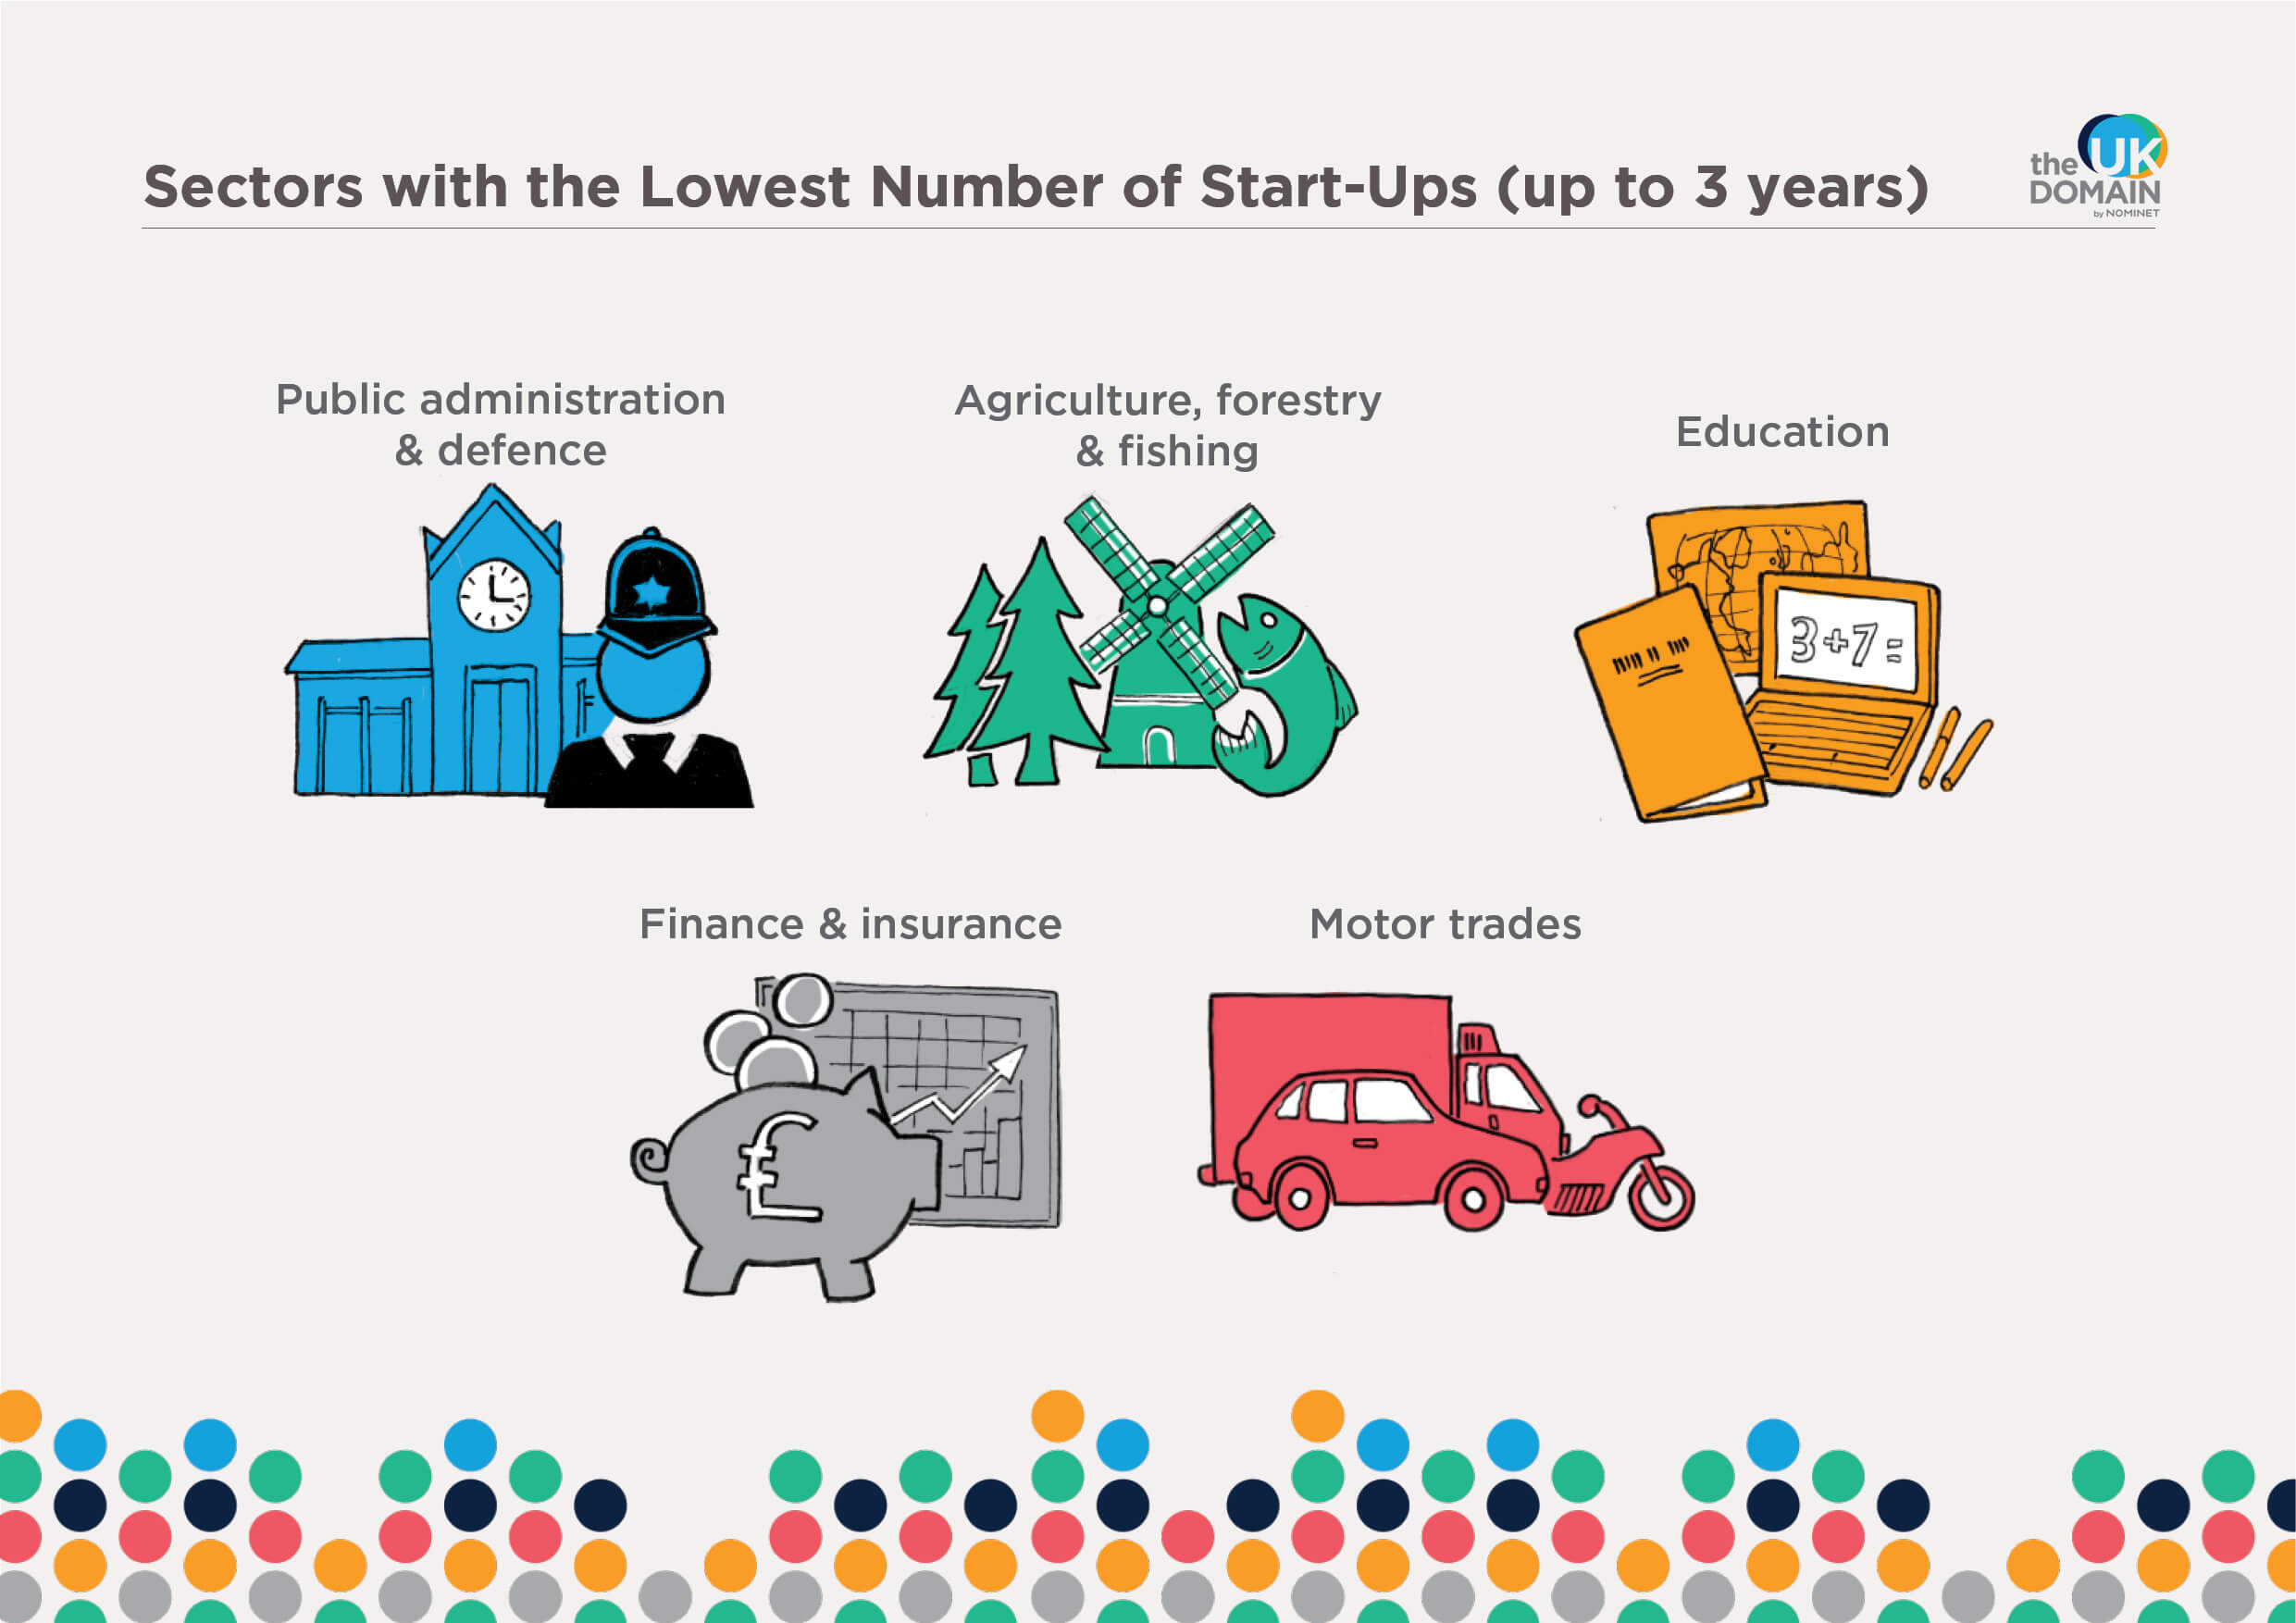 Sectors with the lowest number of start-ups (up to 3 years)